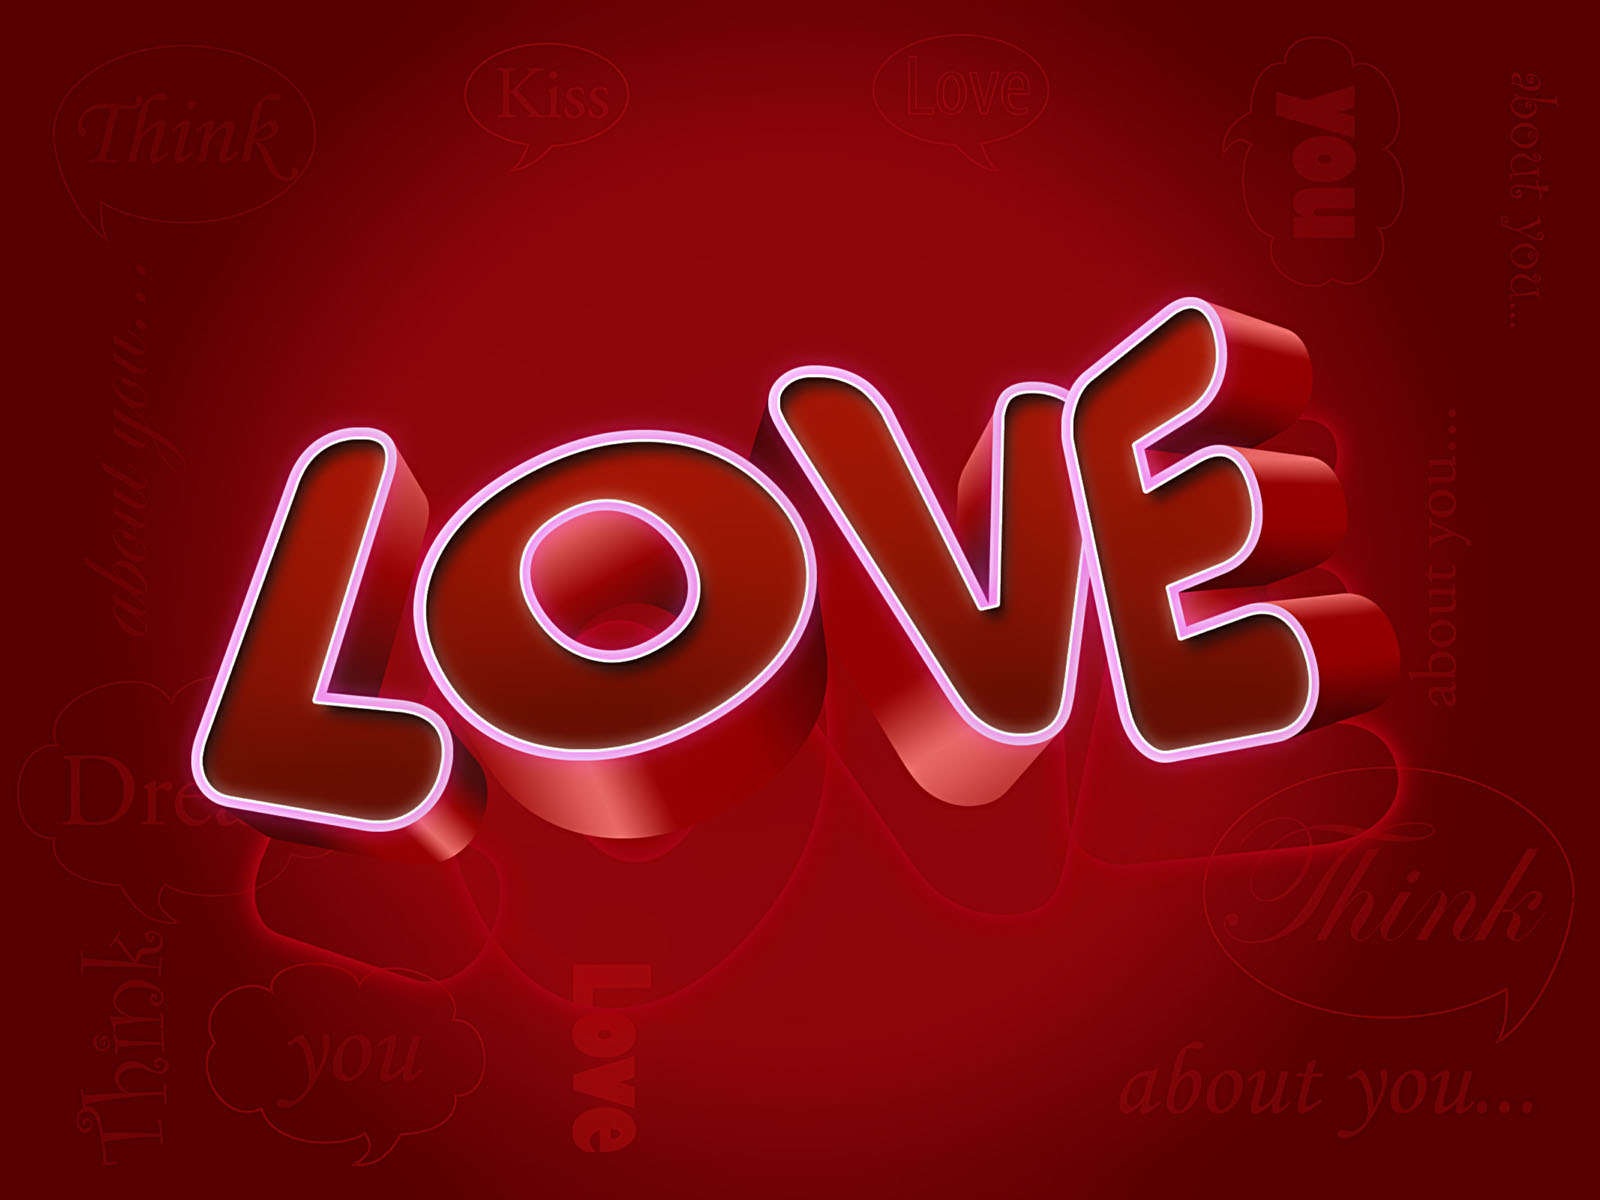 Keywords Love Words Wallpapers Love Words Desktop Wallpapers Love Words Desktop Backgrounds Love Words Photos Love Words Images And Pictures